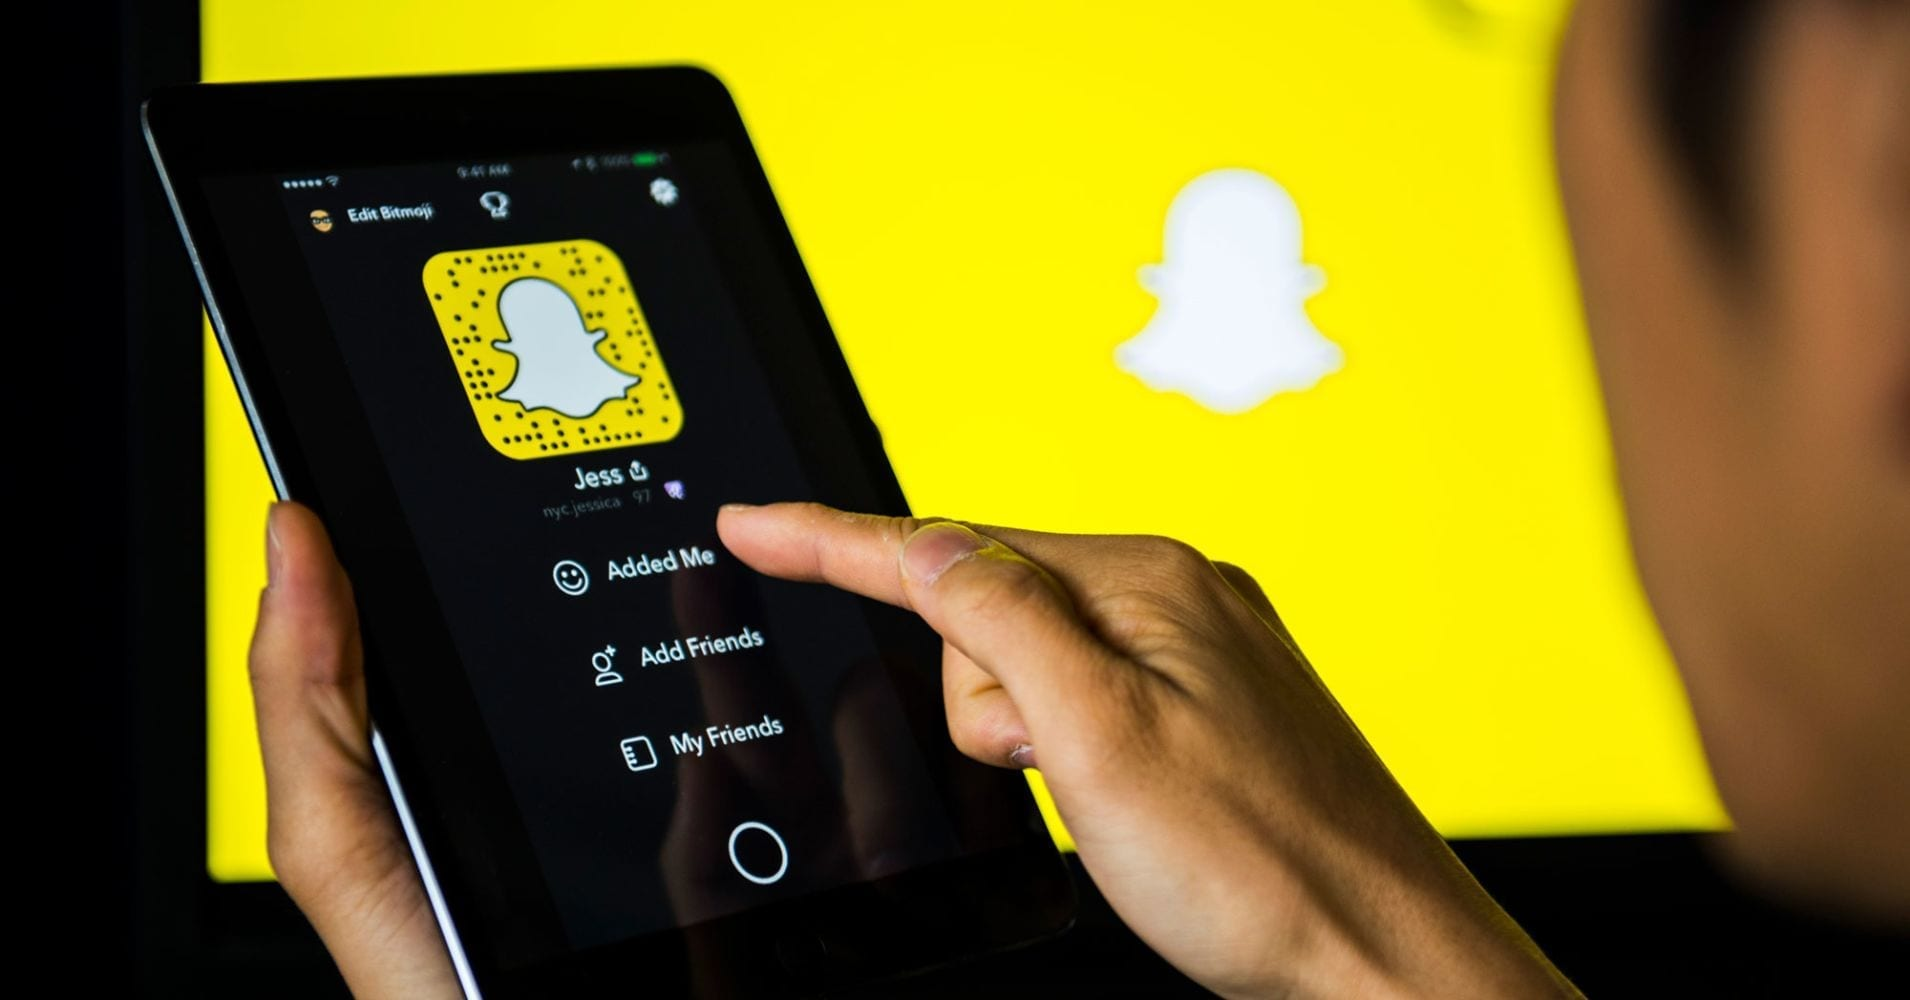 Snapchat to rollout new feature that let public posts longer lasting or even permanent – like Instagram stories – and reveal identities